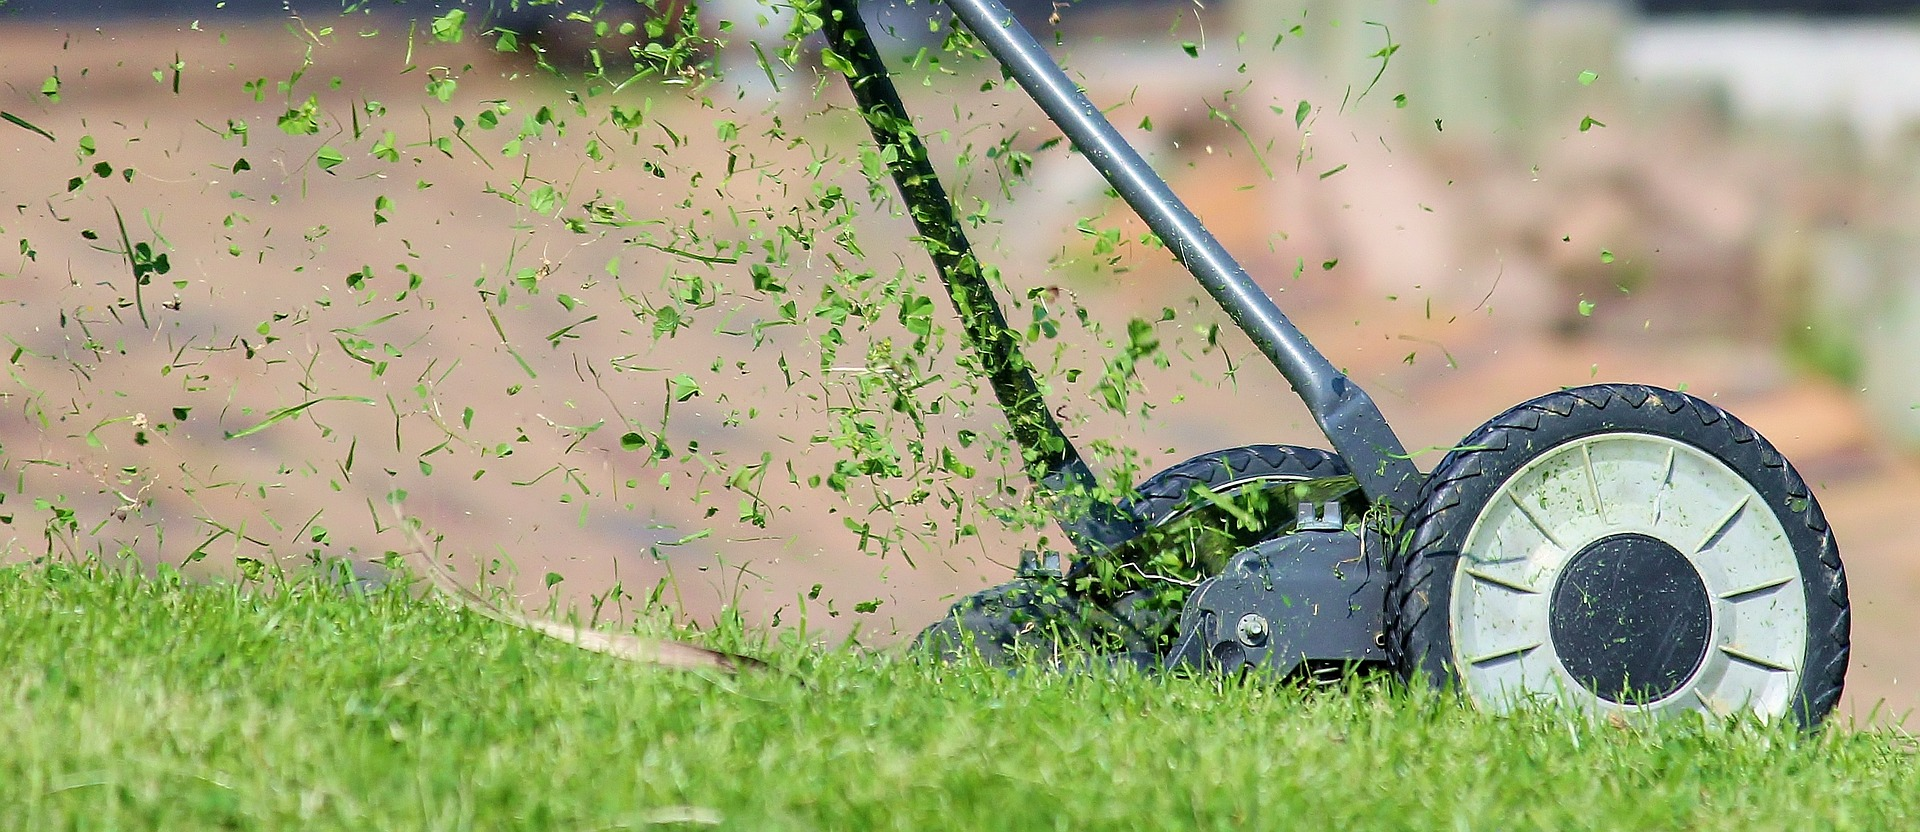 No time for slacking! Follow these 4 tips now for a greener lawn come Spring!